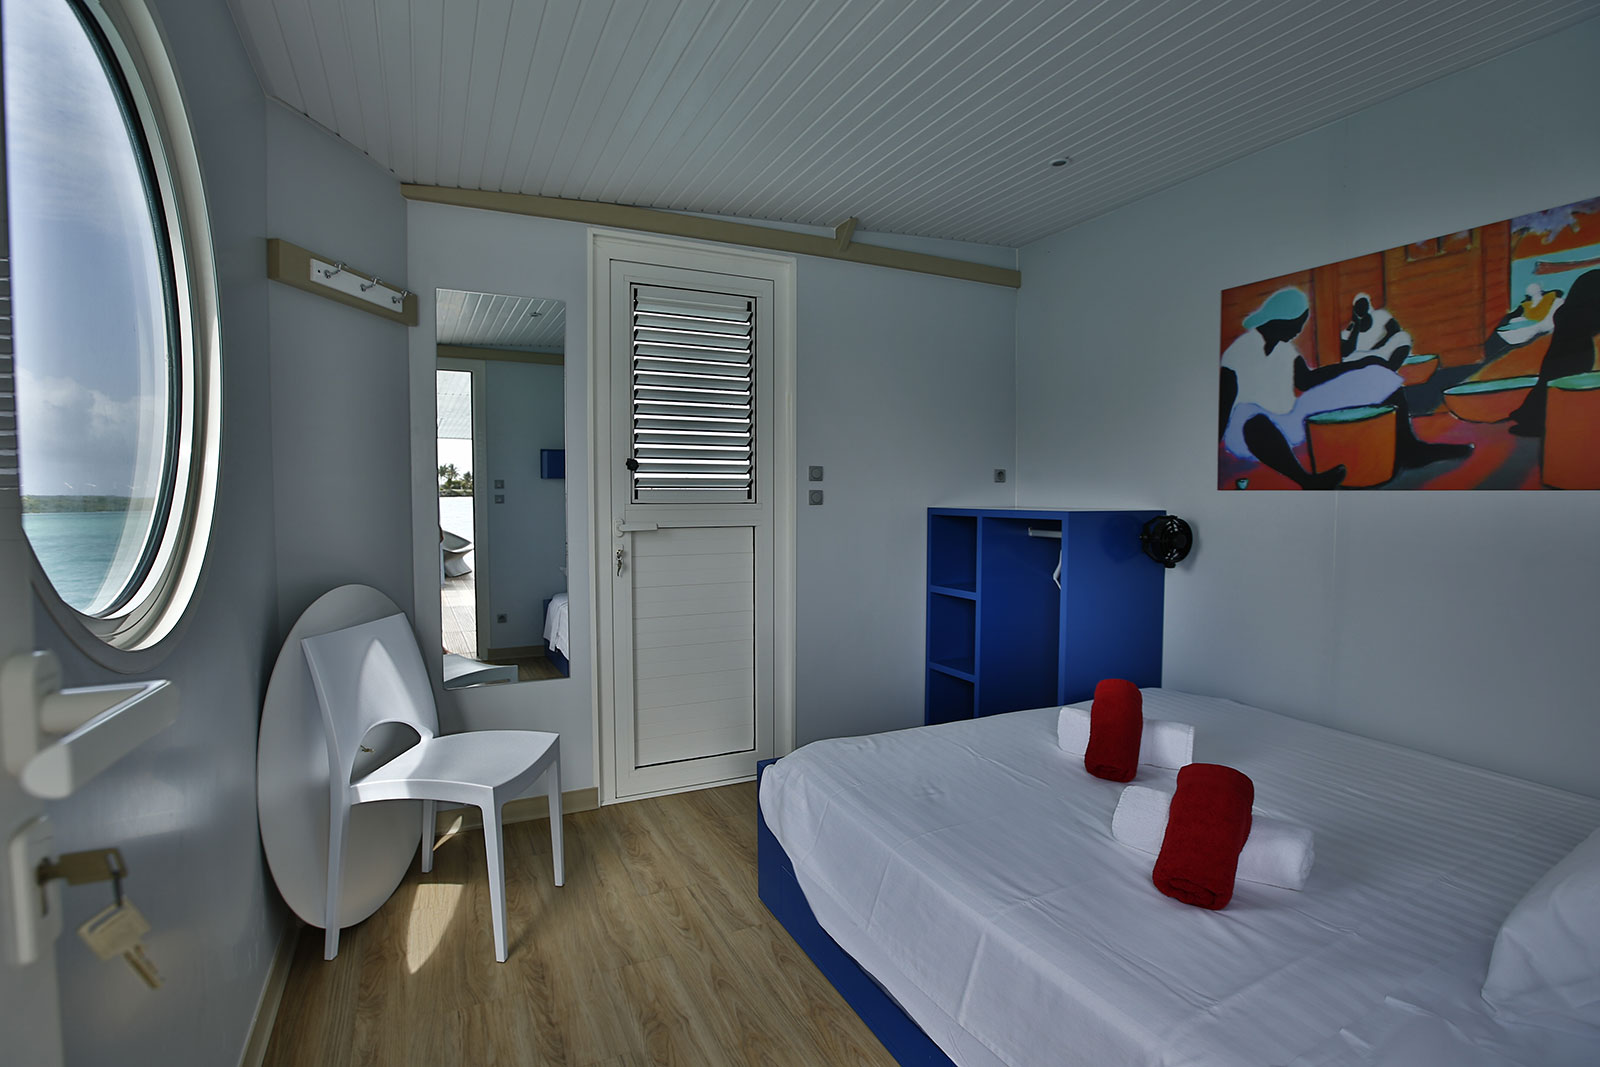 http://www.deshotelsetdesiles.com/hotel-vol-guadeloupe/photos/360Productions-34.jpg